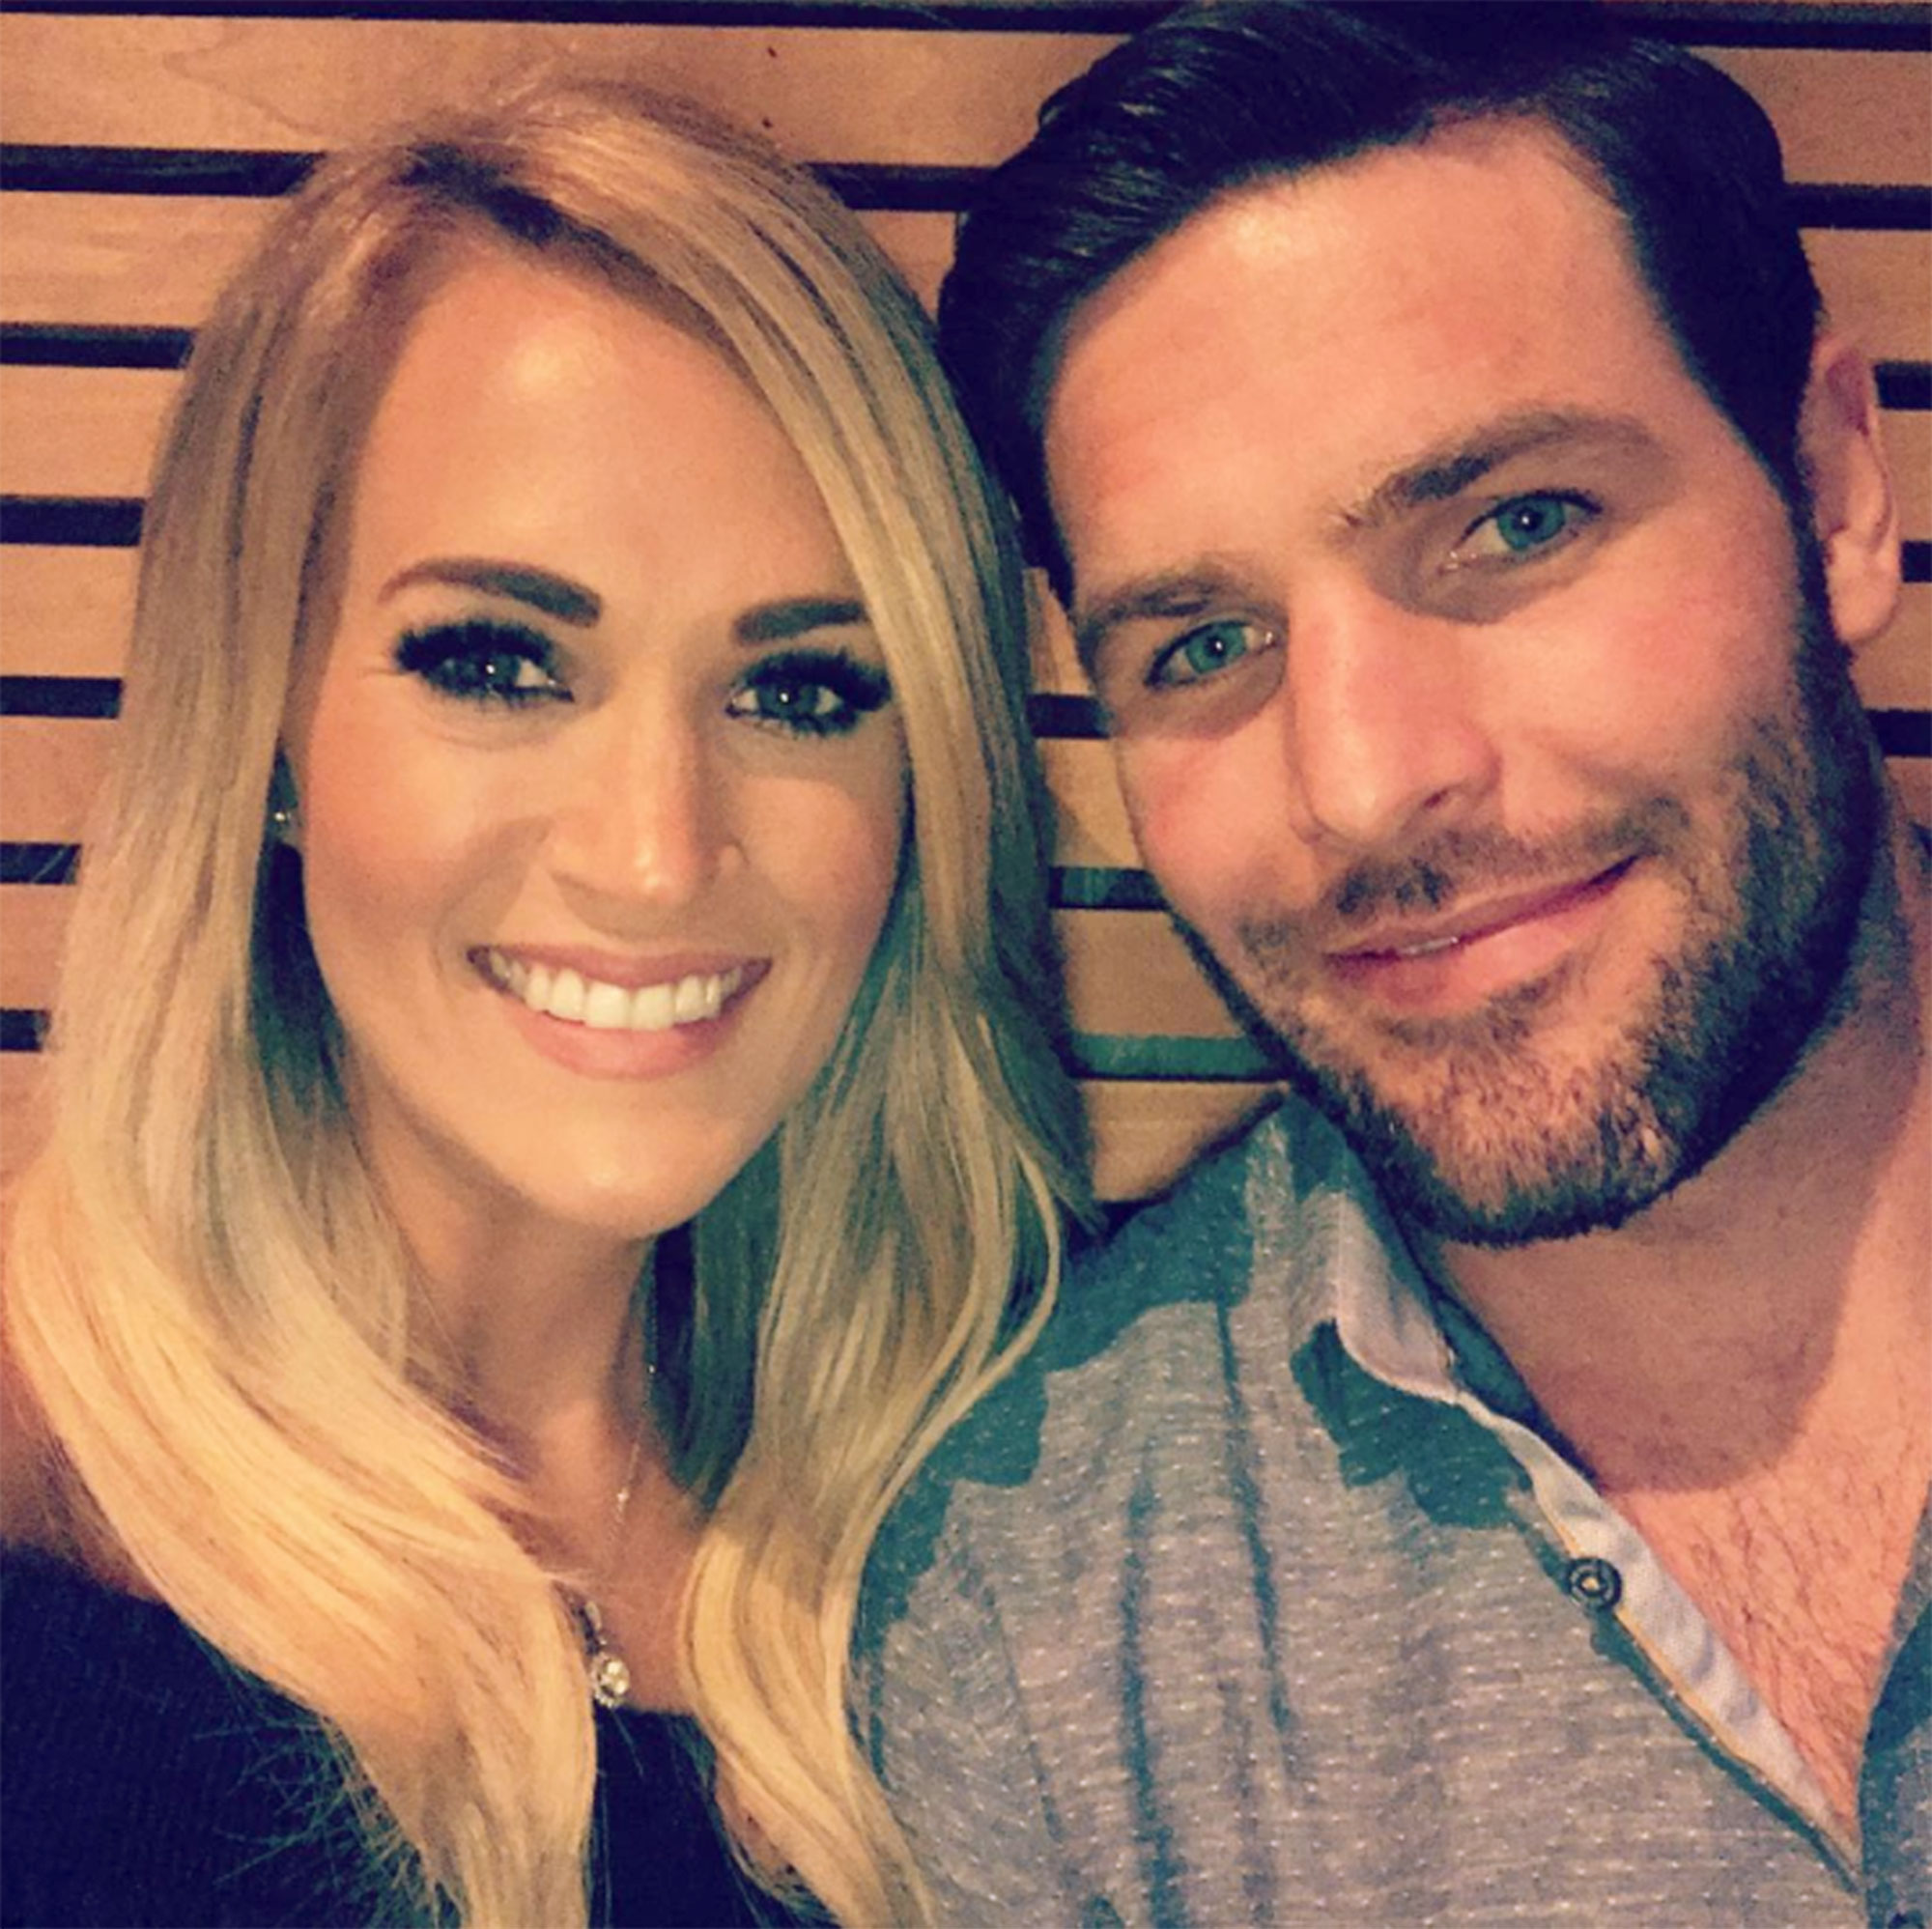 Carrie Underwood And Husband Mike Fisher Celebrate 7 Year Wedding Anniversary